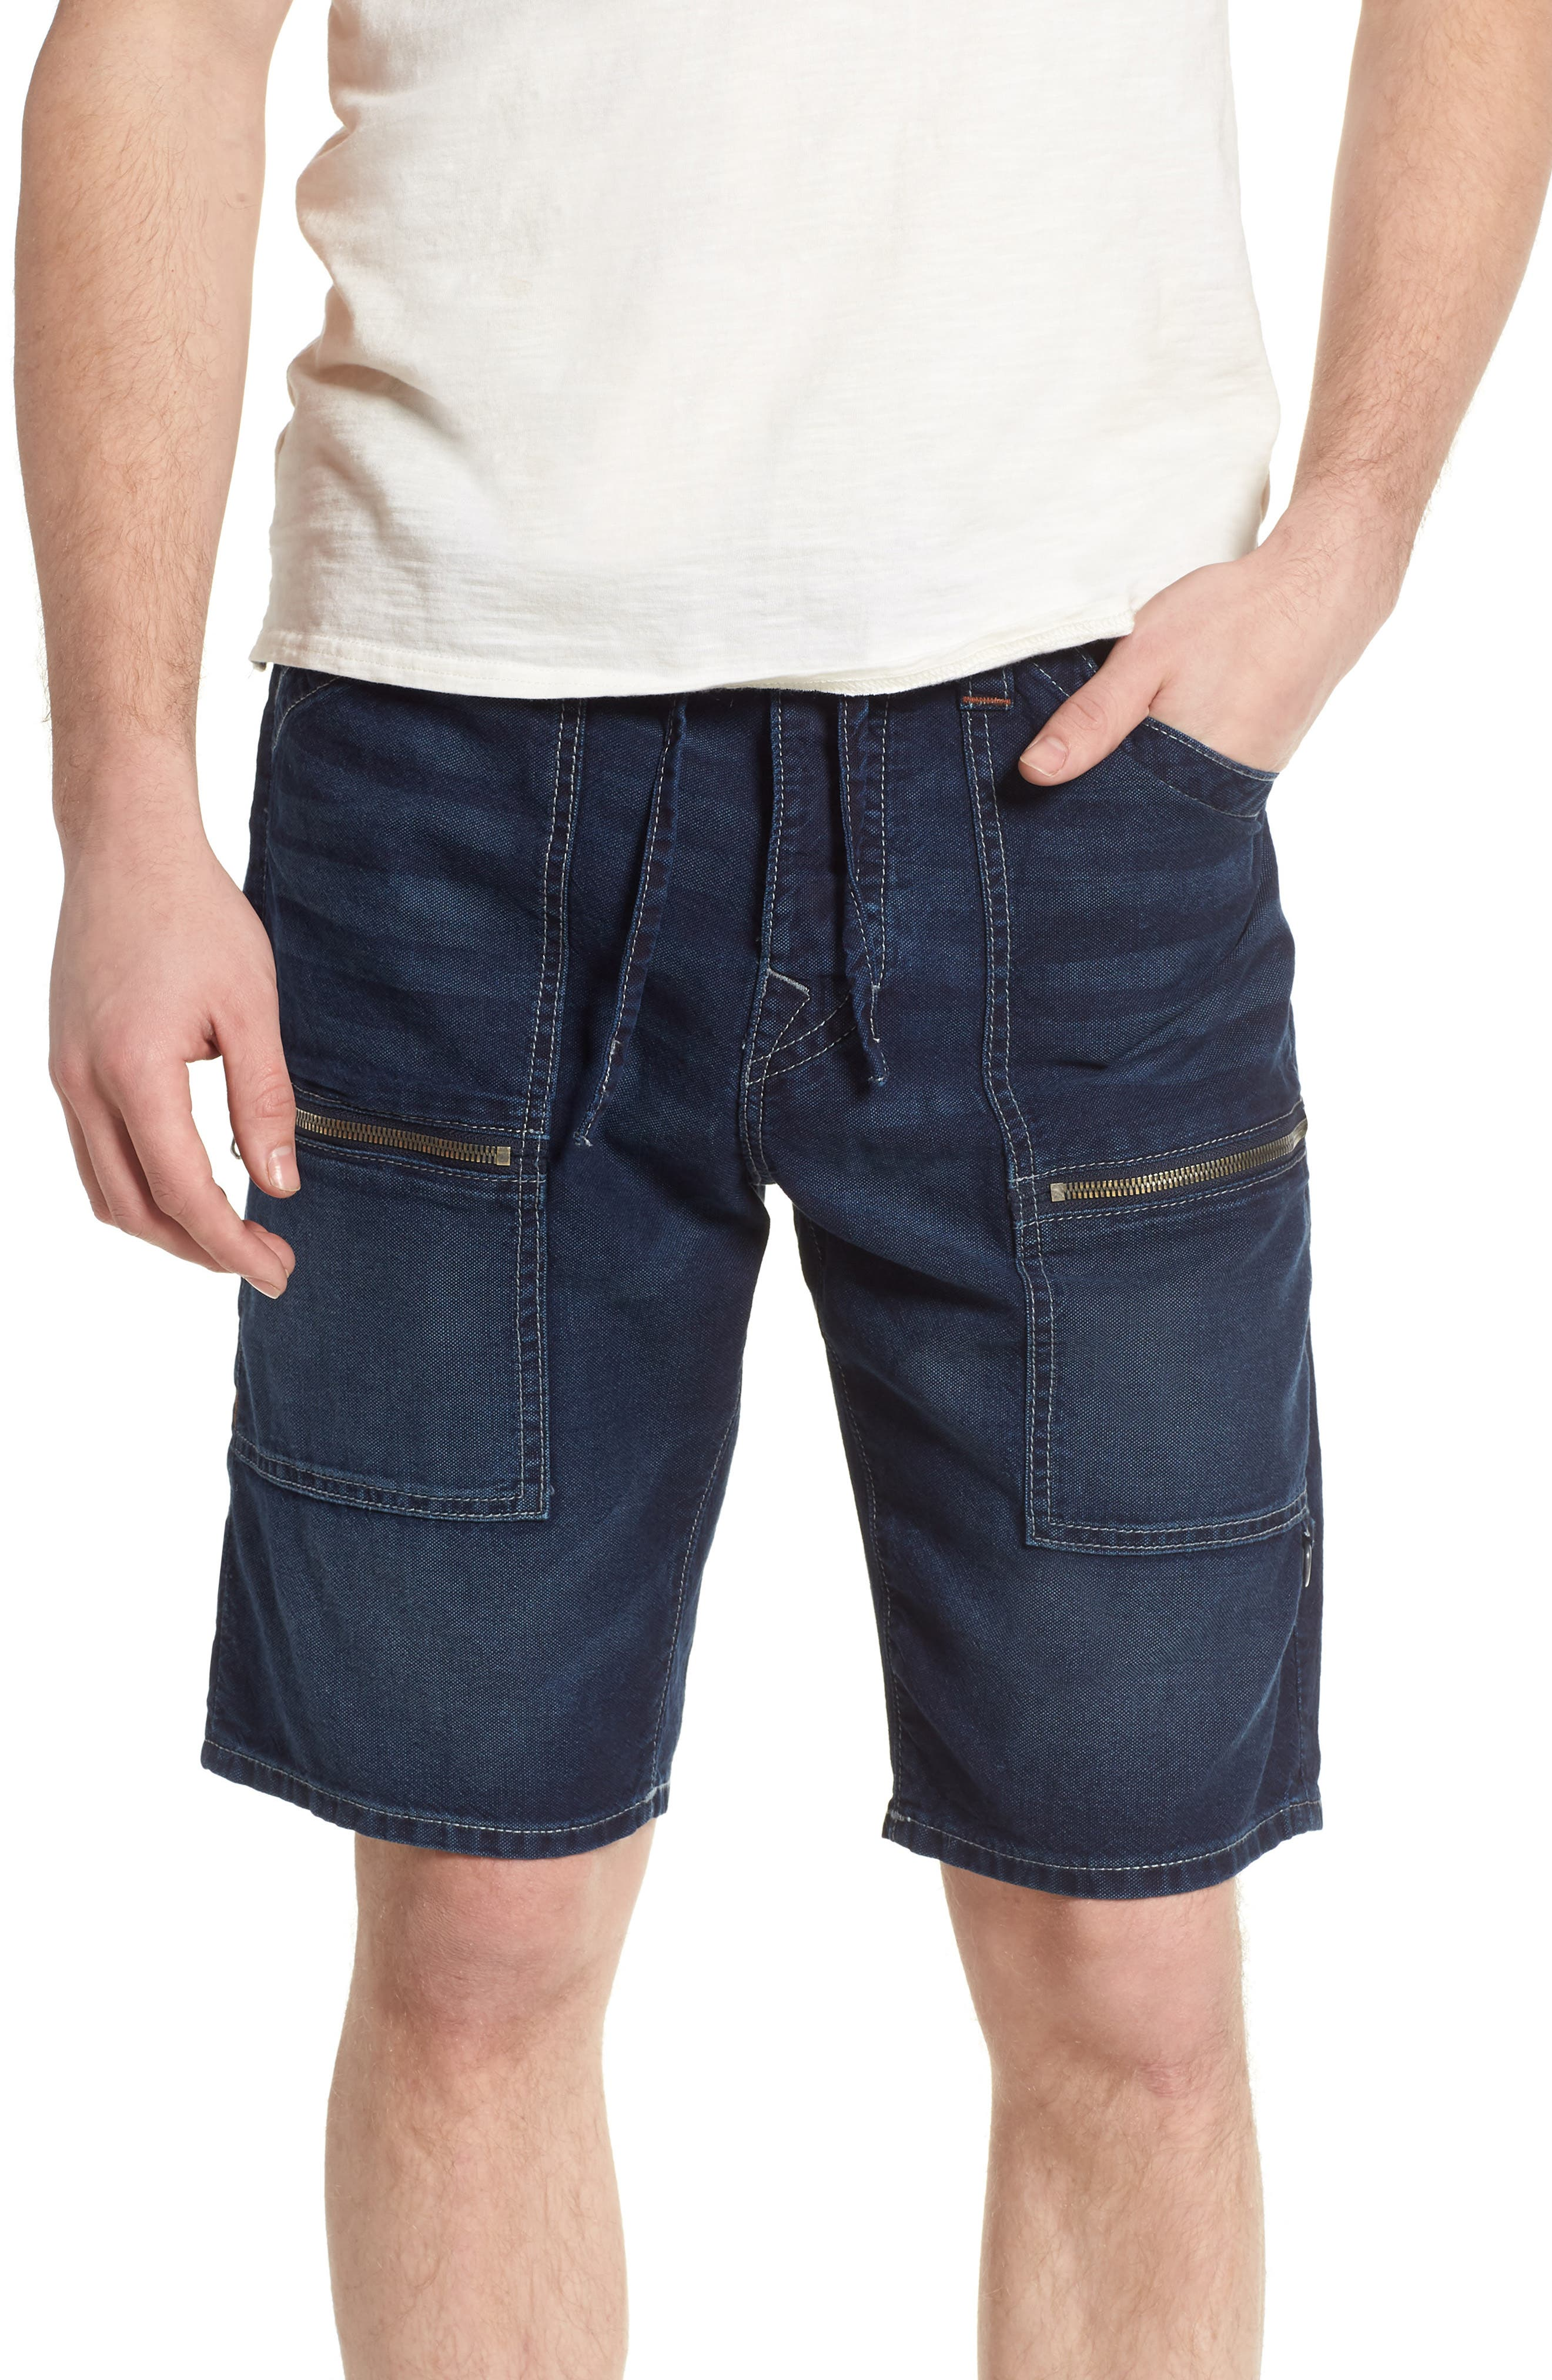 Trail Utility Shorts,                             Main thumbnail 1, color,                             UNION SPECIAL